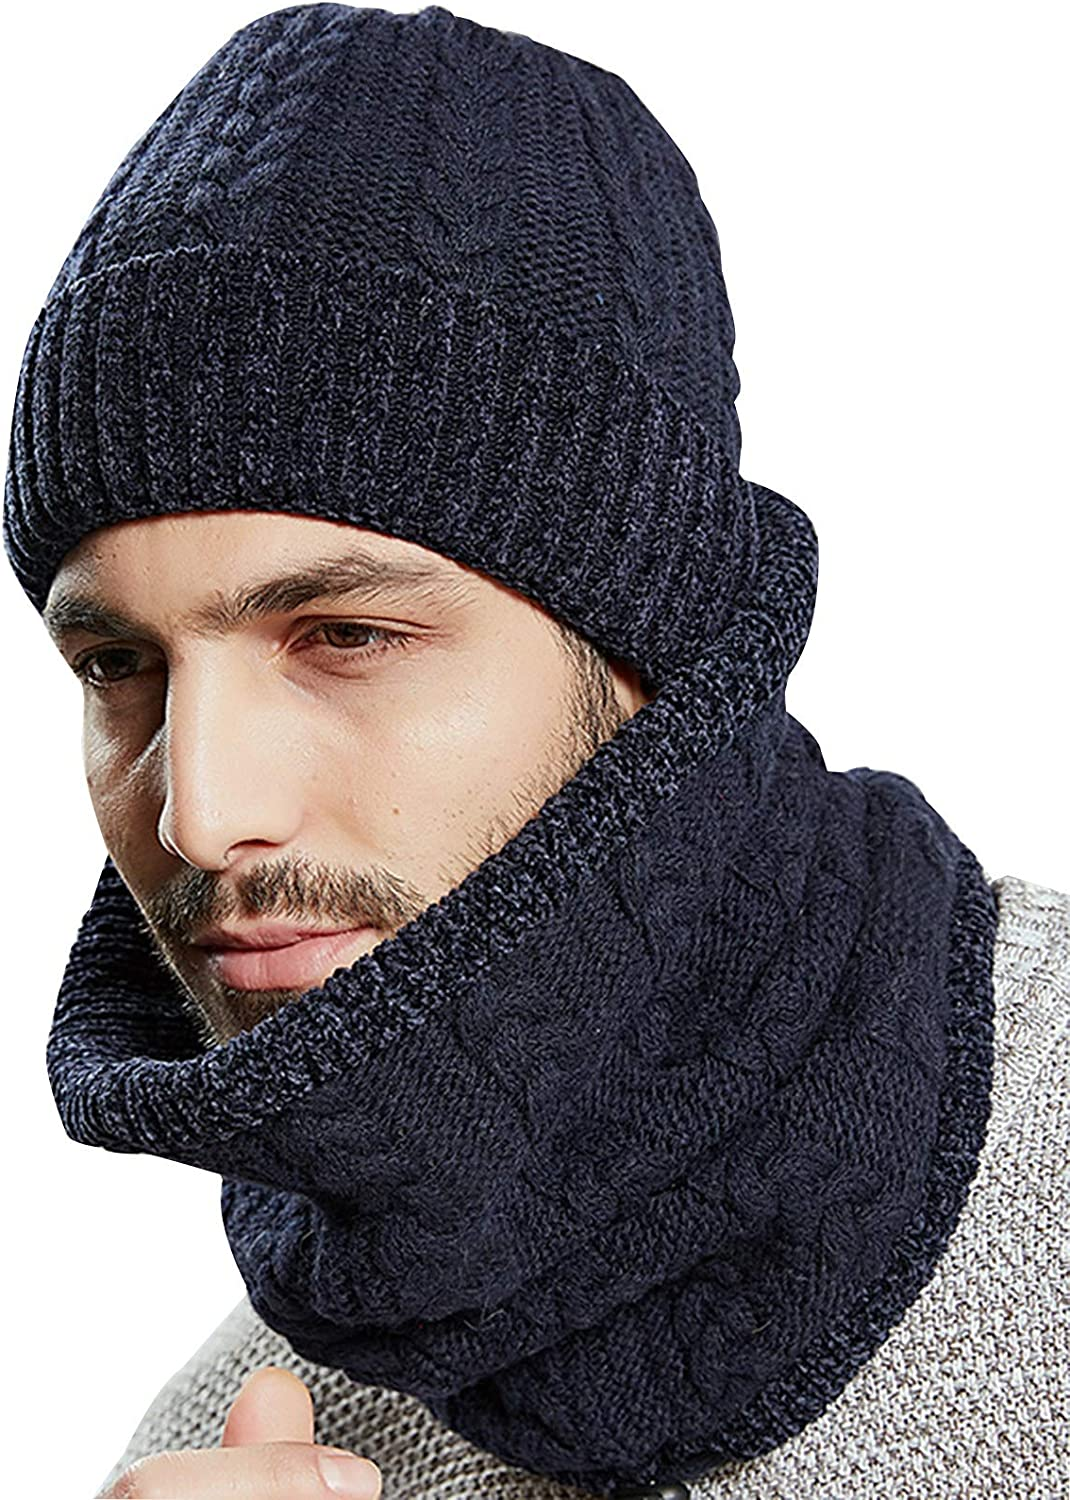 FOLDING Hats Caps Winter High material Beanie Hat Male Set Tulsa Mall Warm Wi Scarf